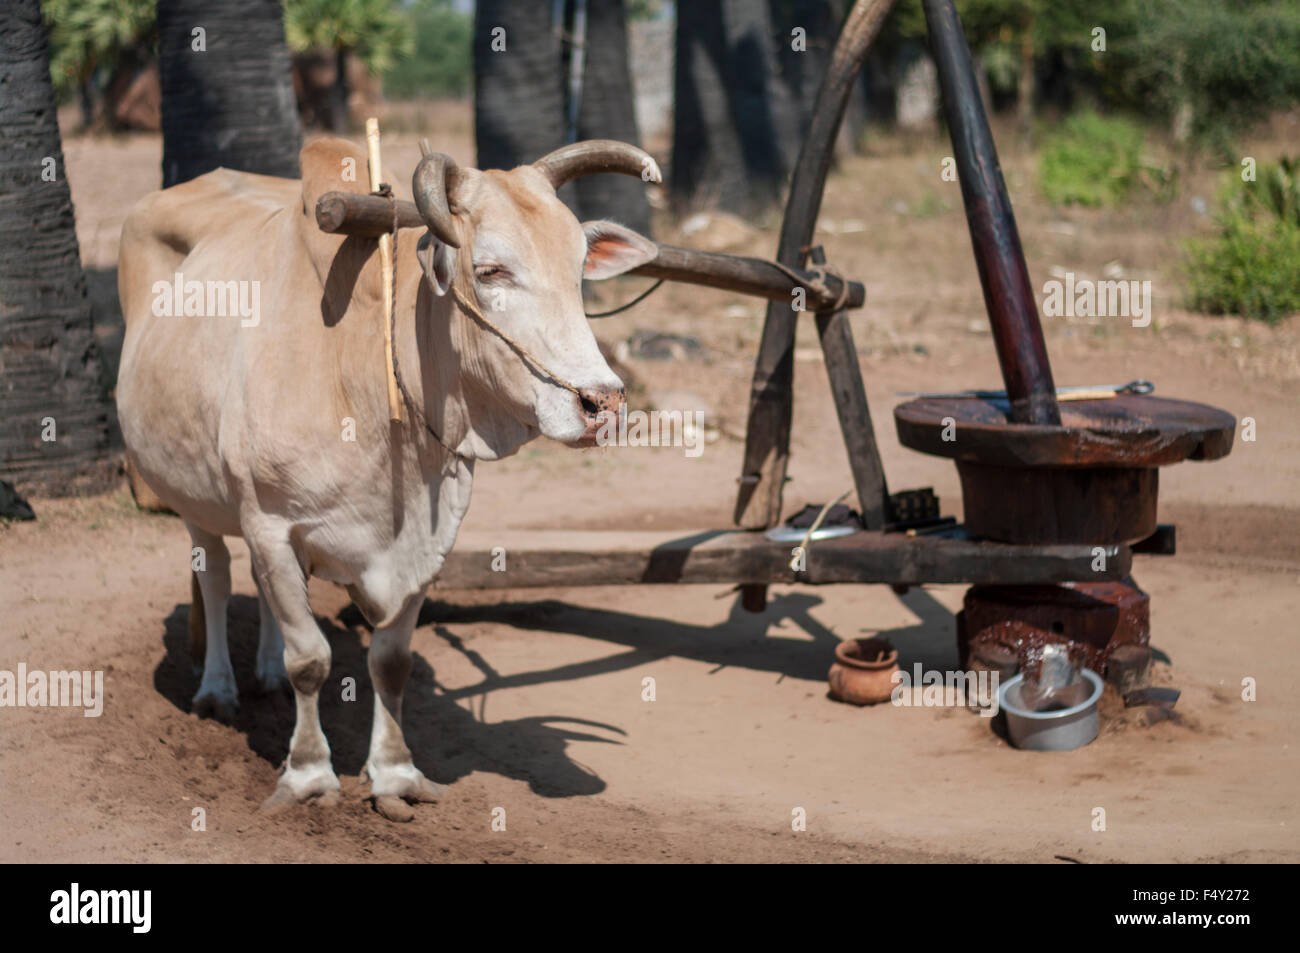 Zebu oxen wearing a yoke harness, ready to walk in a circle to drive a traditional peanut oil mill in central Myanmar - Stock Image